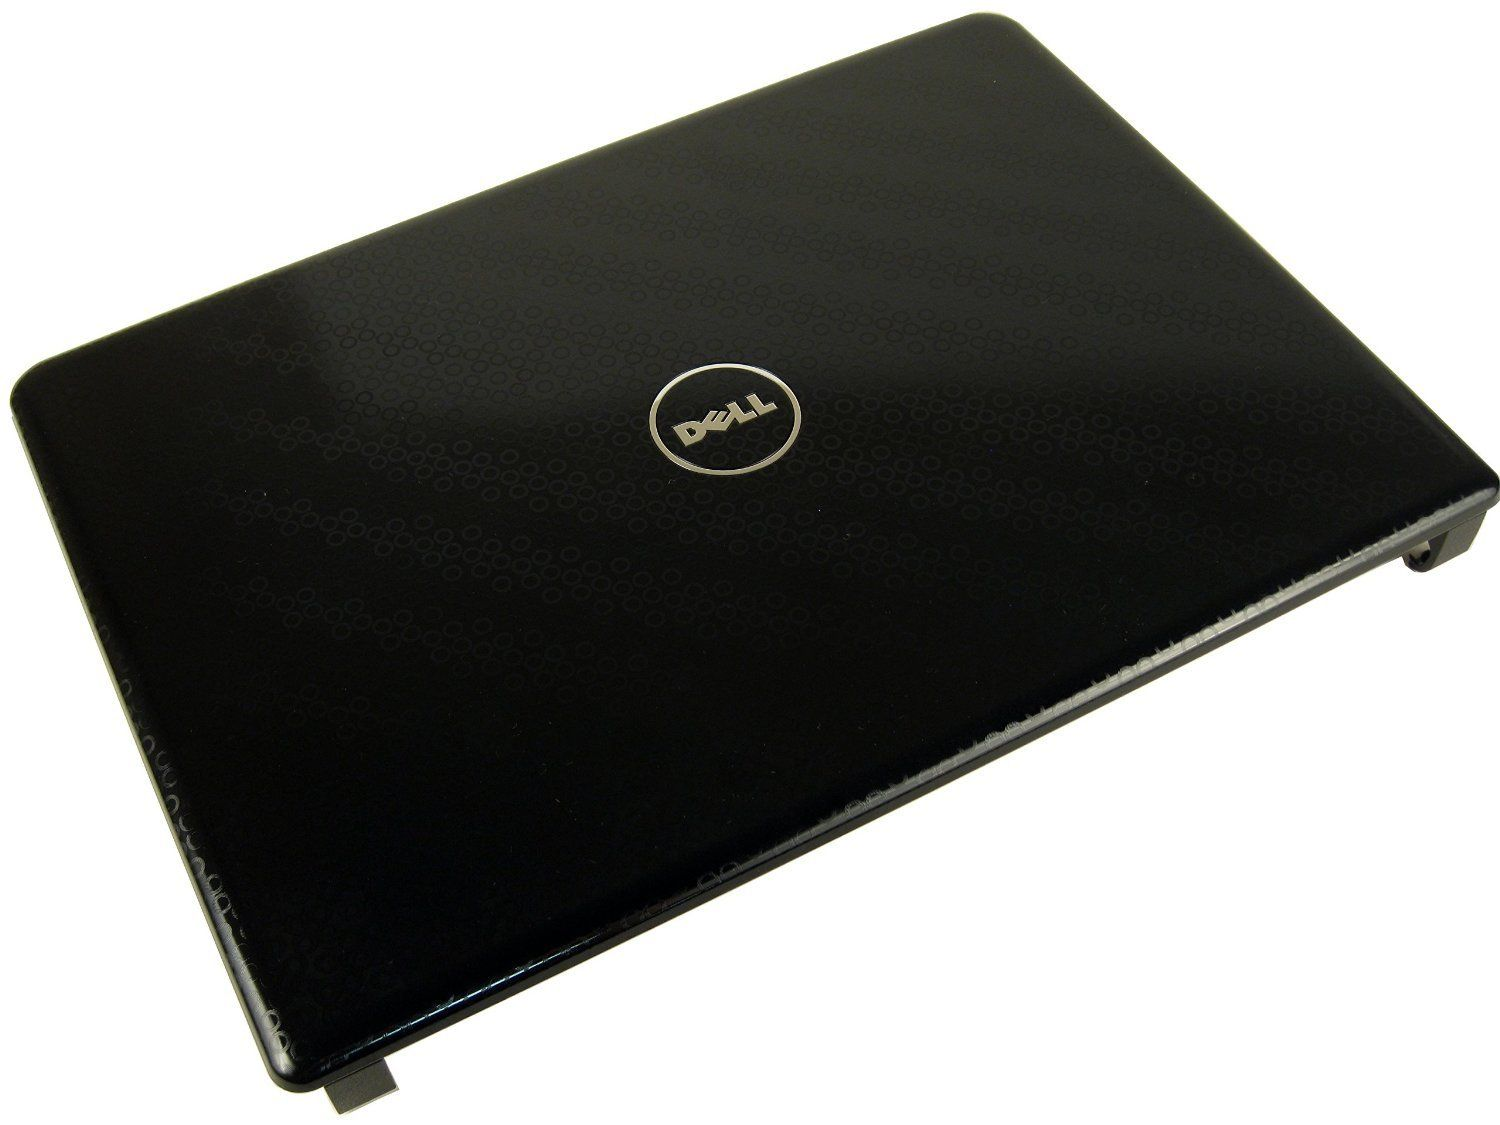 NEW Dell RH78G Inspiron N4020 LCD Back Cover Lid